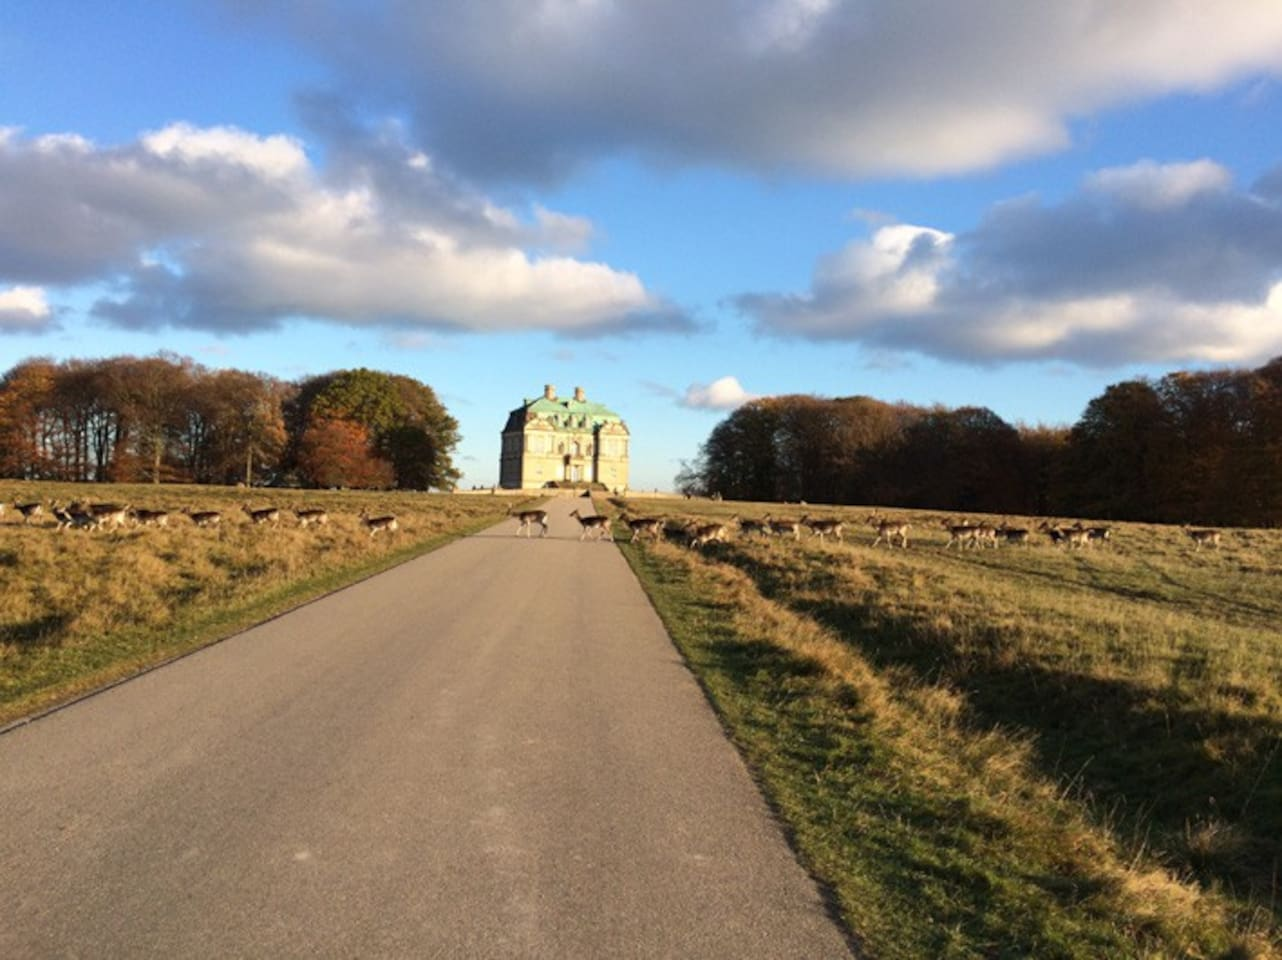 Dear park Dyrehaven in Klampenborg 30 minutes bikeride from here (or take bus/train)